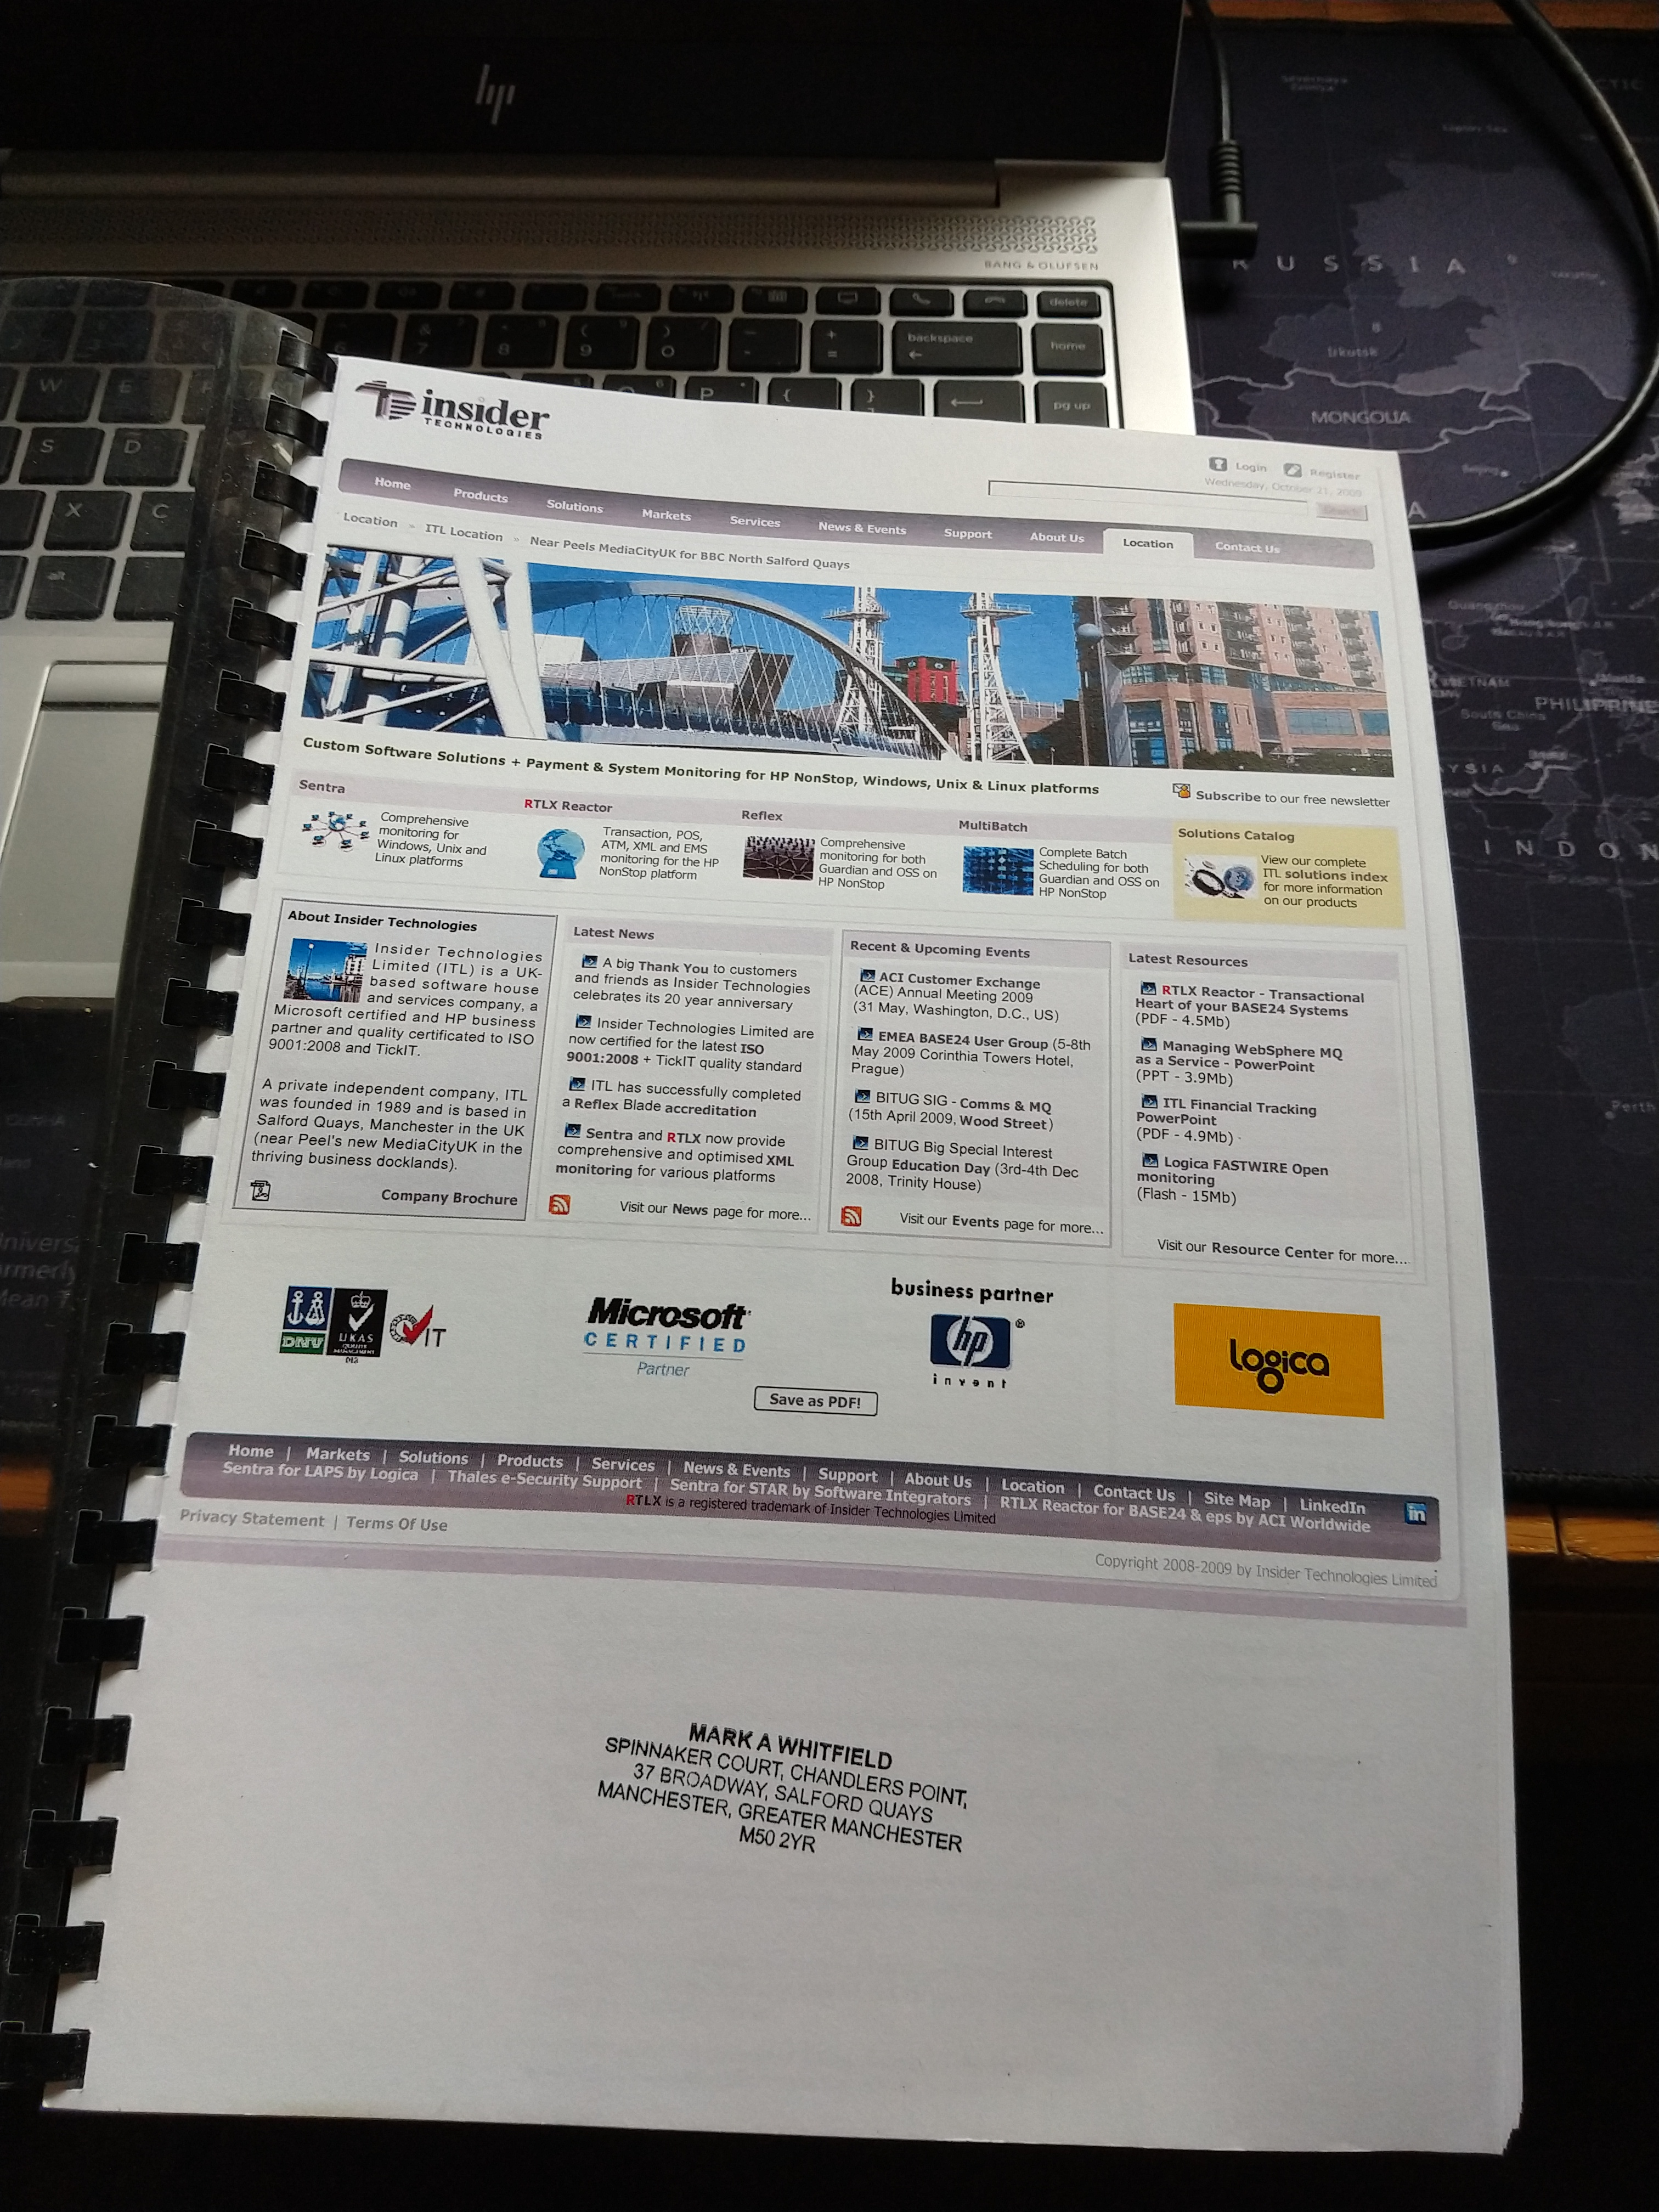 Mark Whitfield Insider Technologies 2009 to 2013 Salford Quays M50 2YR Spinnaker Court Chandlers Point (1)